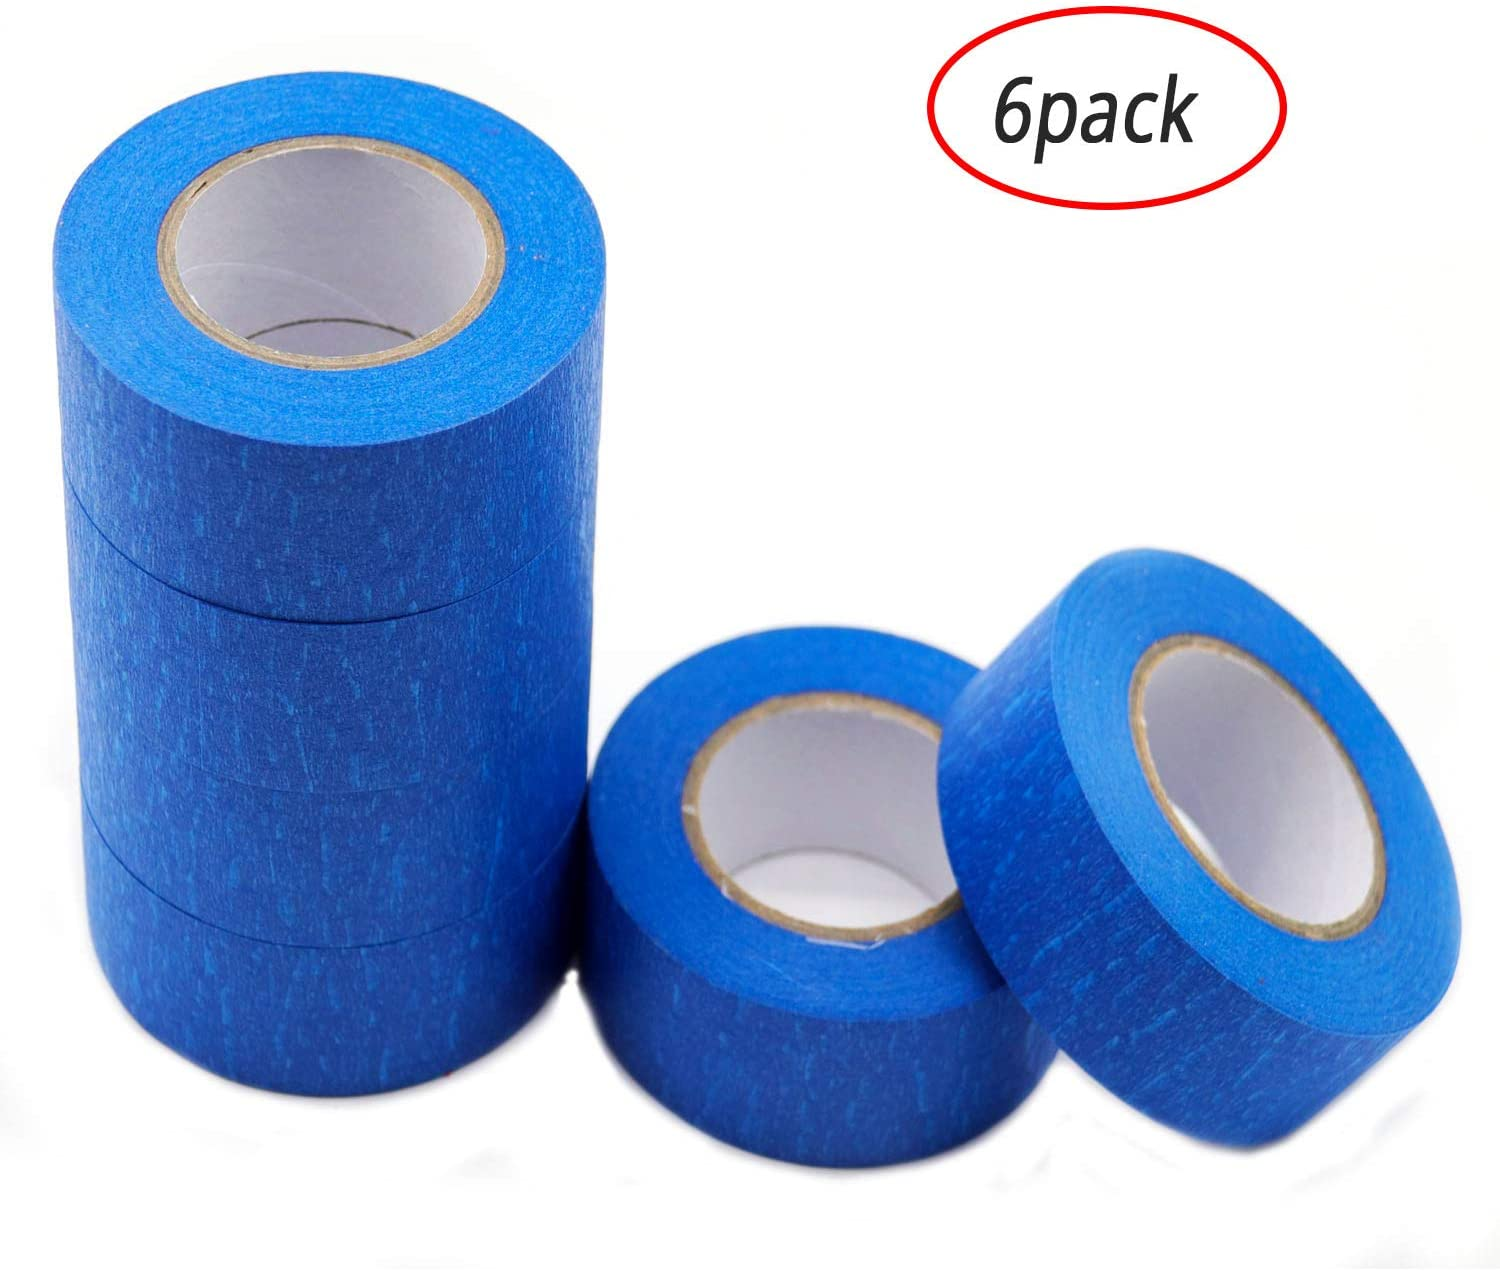 Blue Painters Tape Masking Tape 1 inch,Medium Adhesive,No Residue DIY or Professional Painter (6 Pack,22yard per roll)